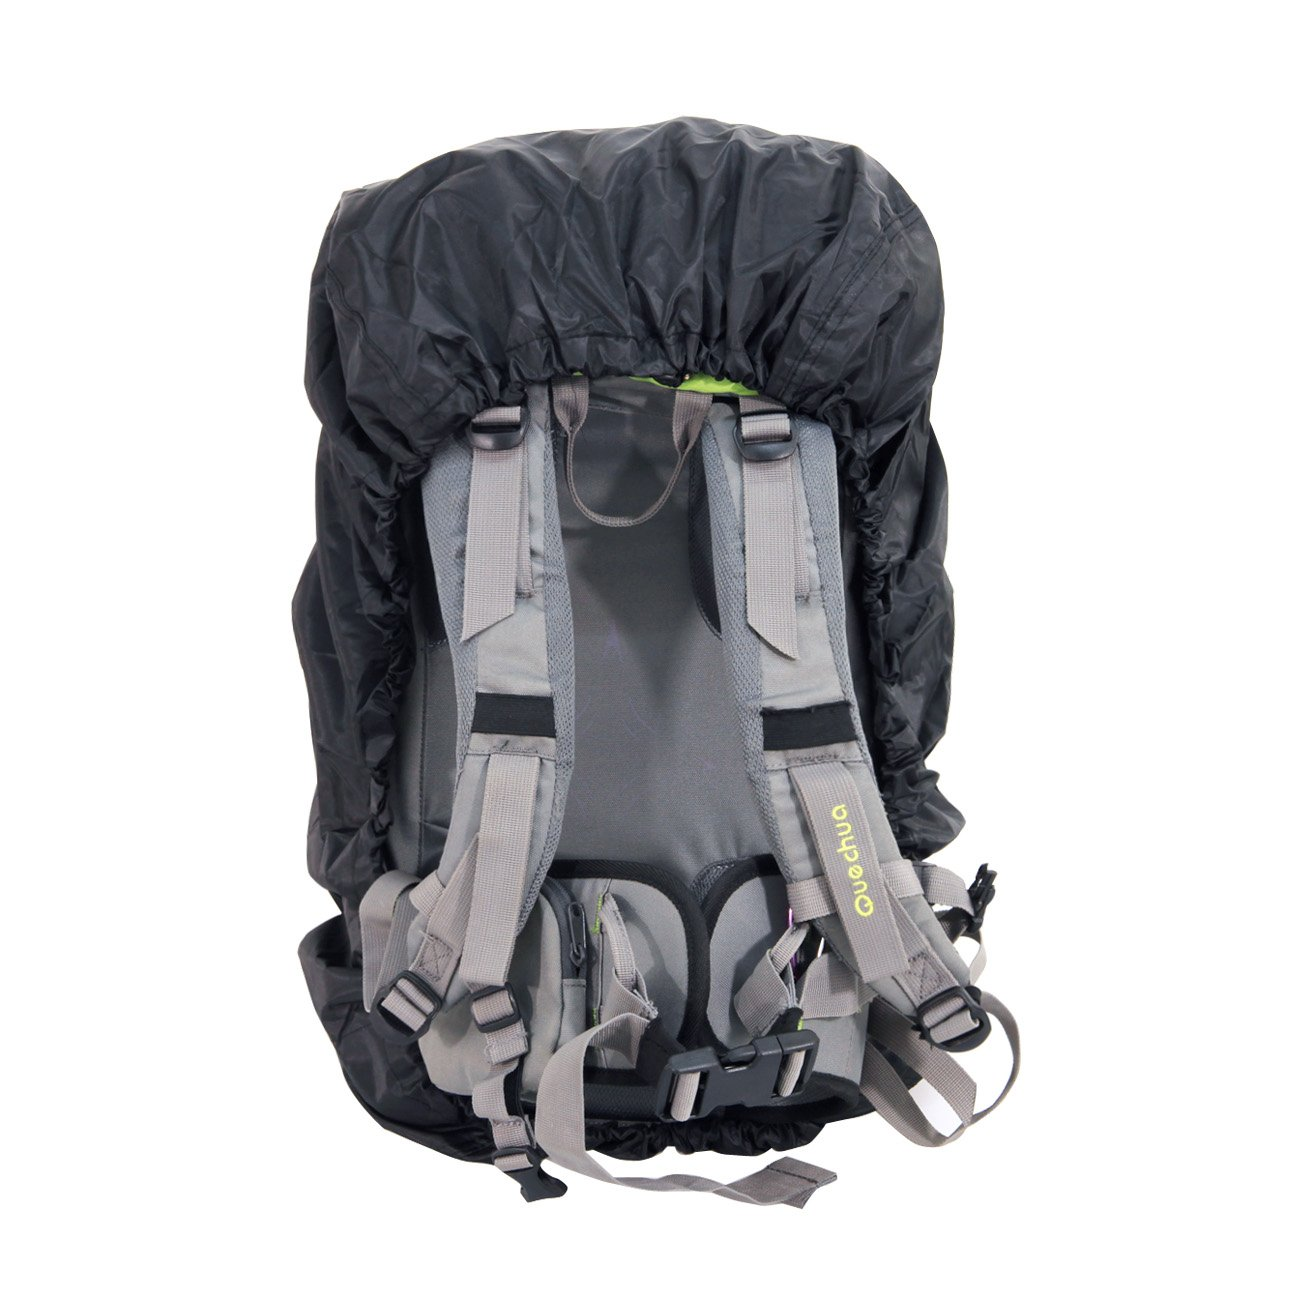 5) BLUE FIELD Rain cover backpack cover sack cover L size 55 ~ 80L Black